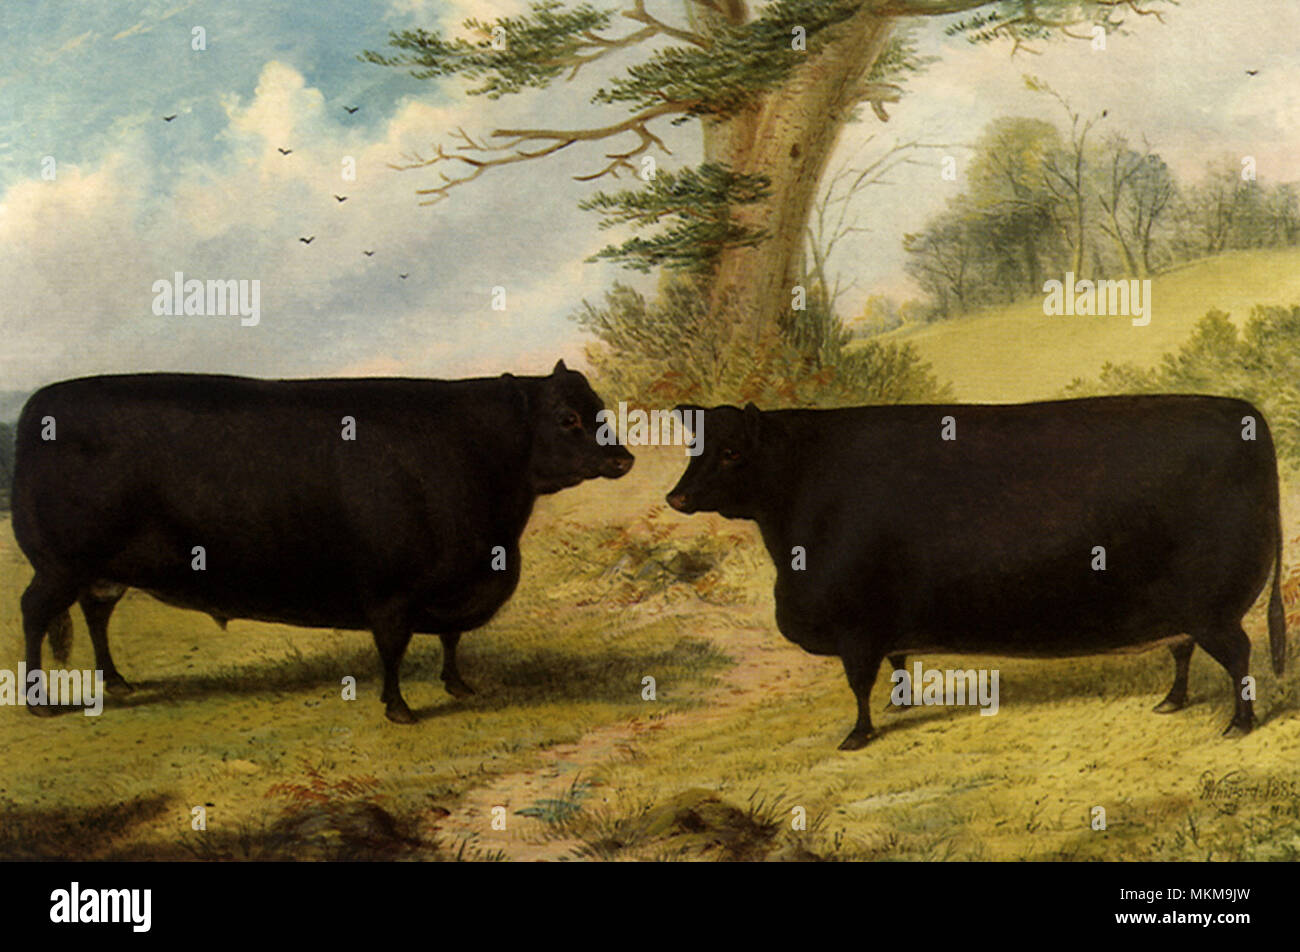 Aberdeen Angus Cattle - Stock Image